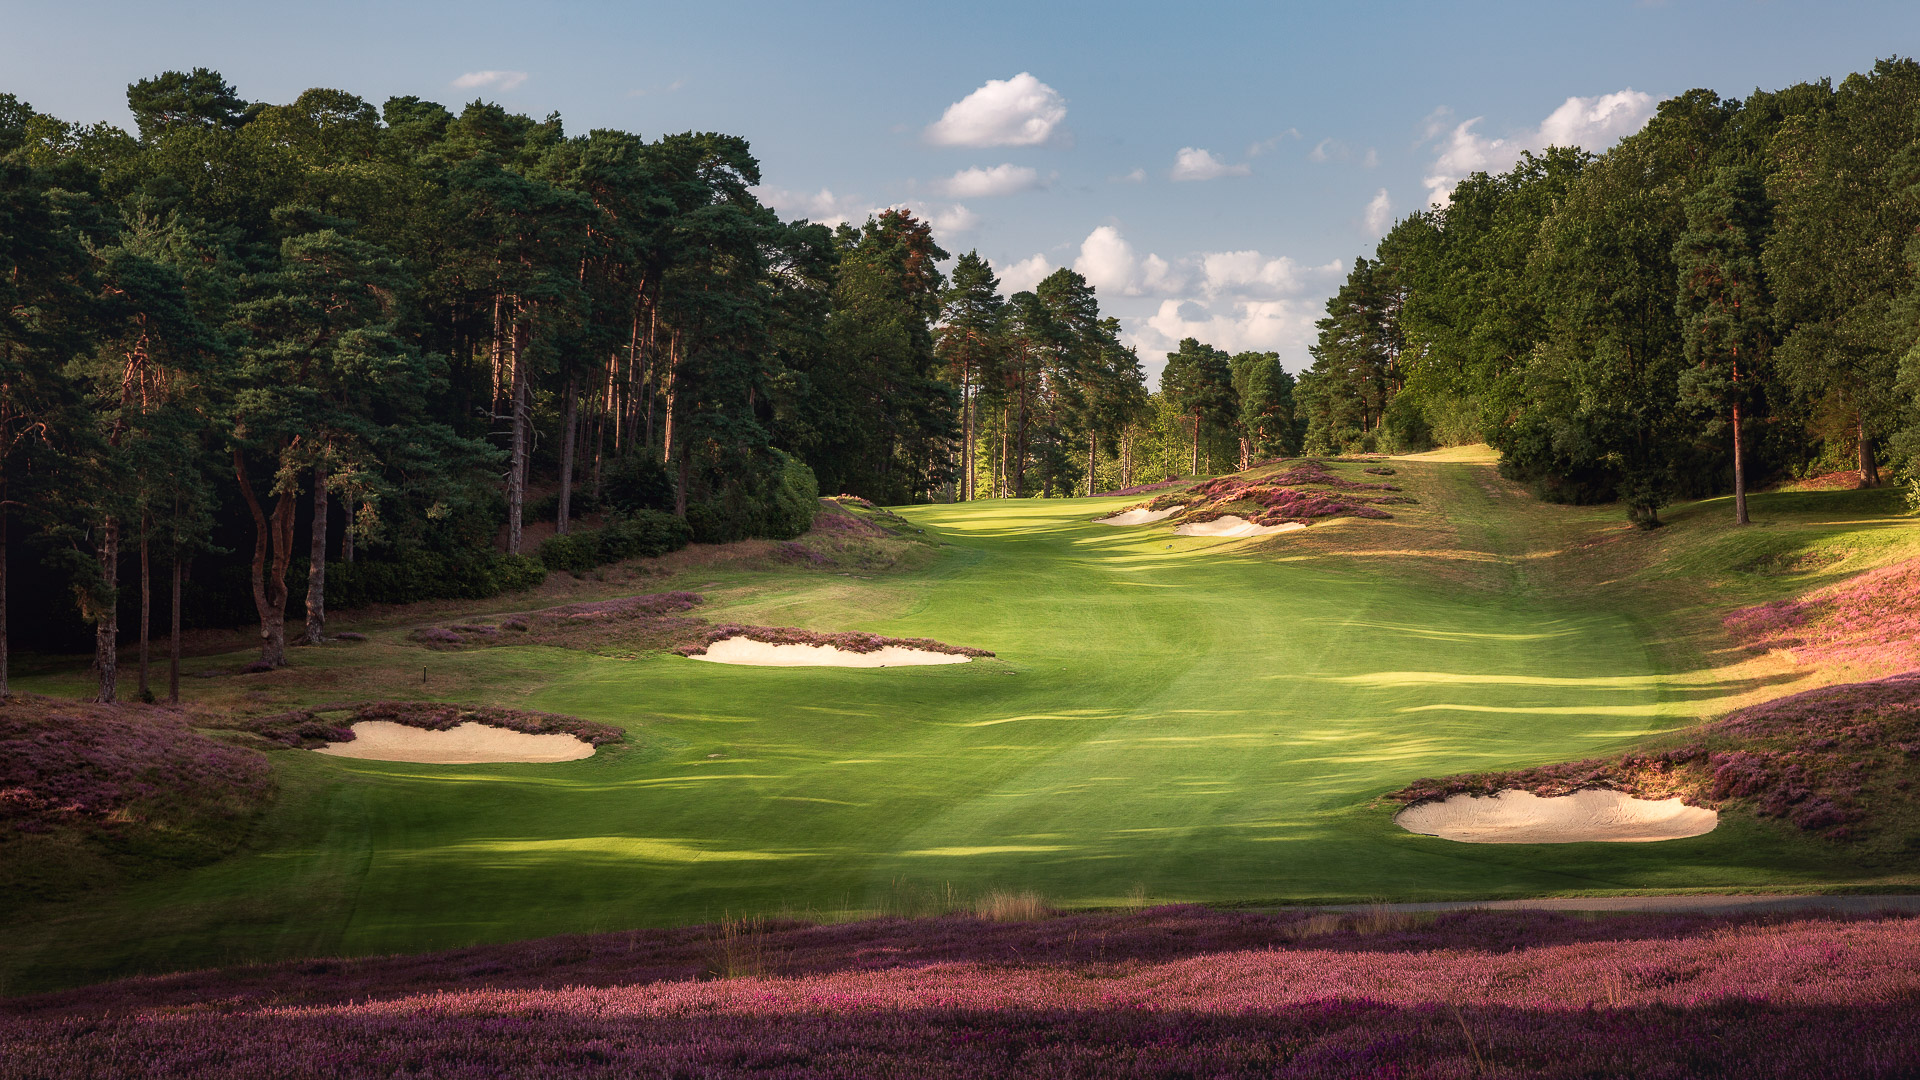 01st-Hole-St-Georges-Hill-Golf-Club-2273-Edit